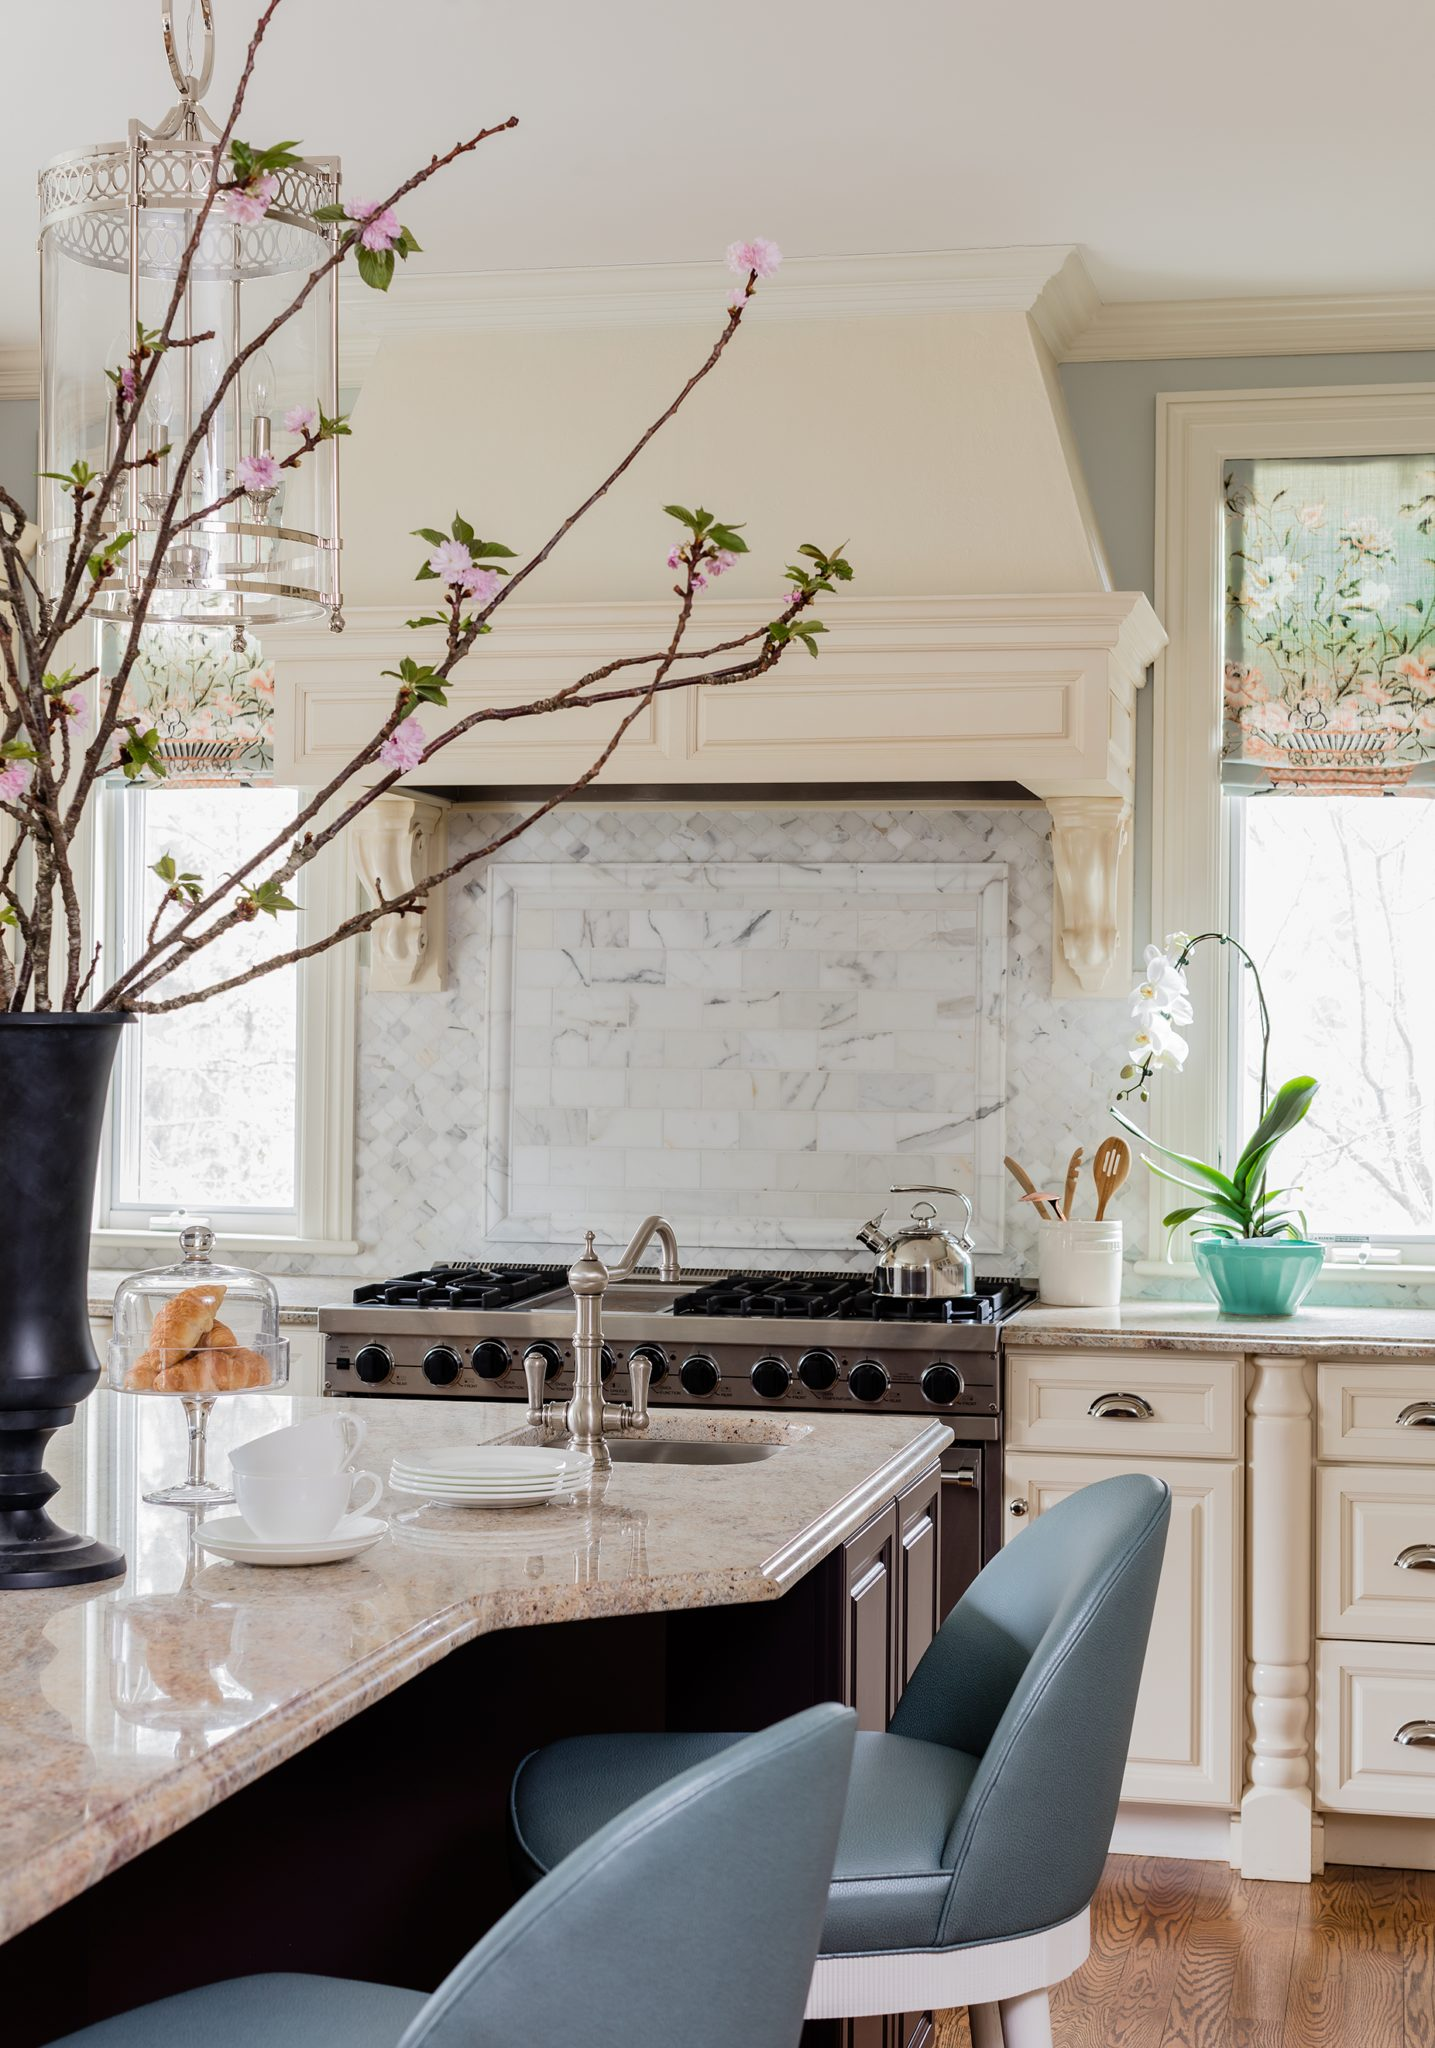 Transitional kitchen with Carrara backsplash and blue leather counter stools by Robin Gannon Interiors